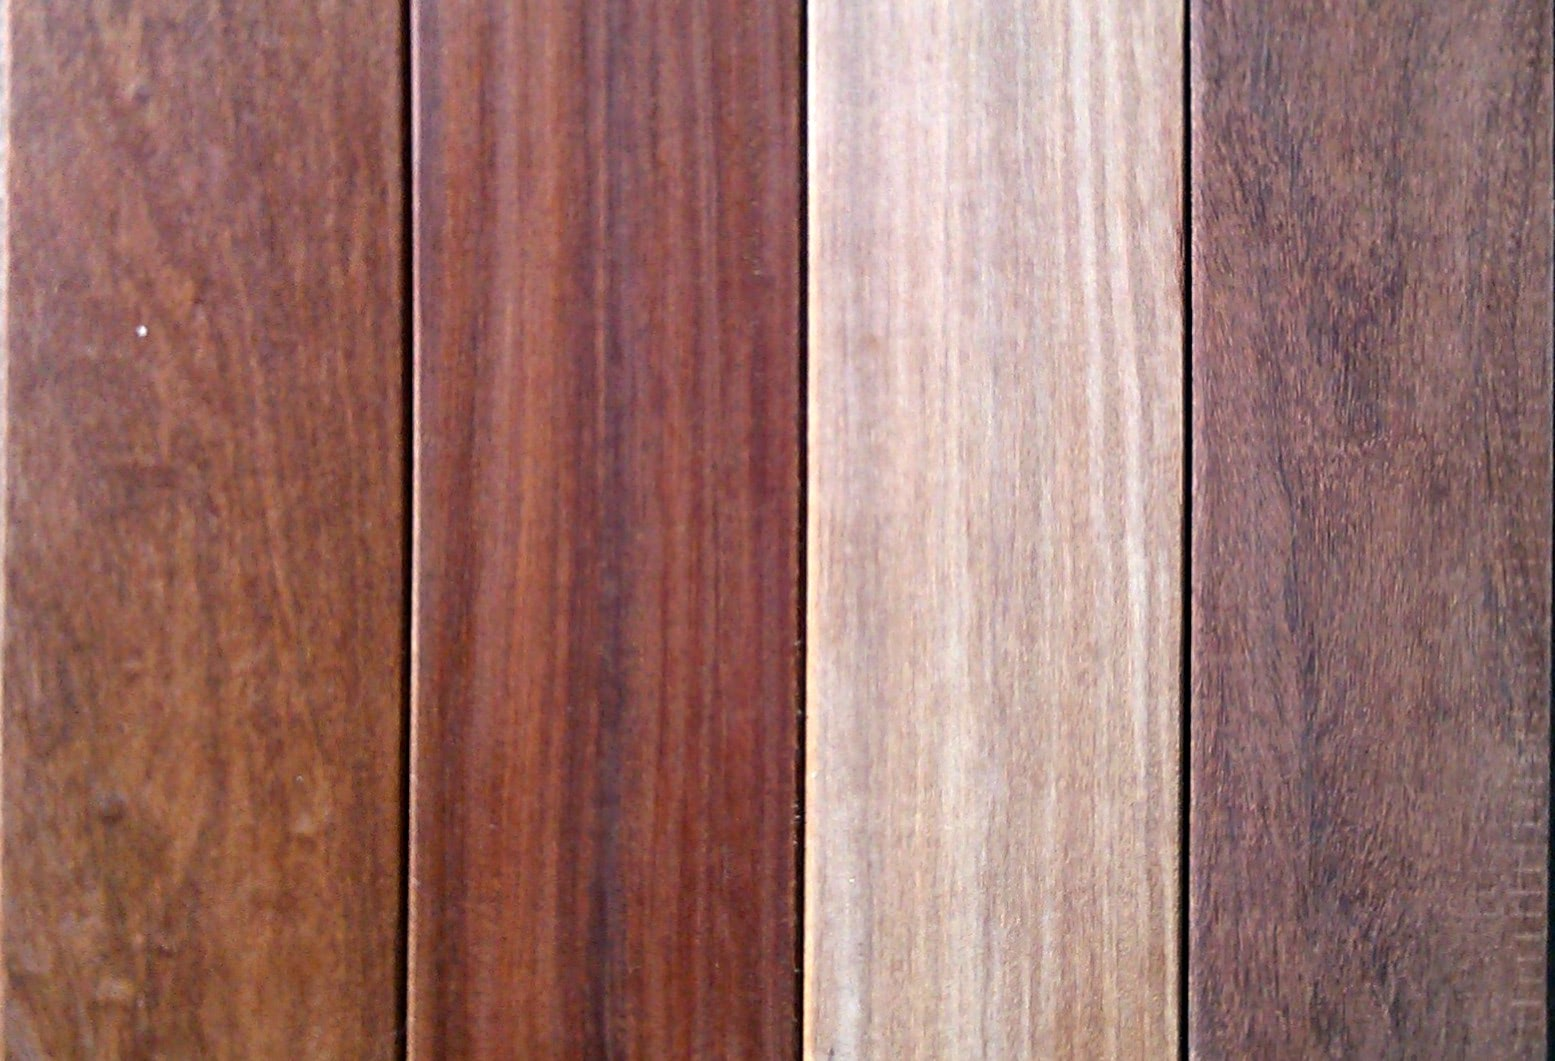 choose your Mataverde decking species